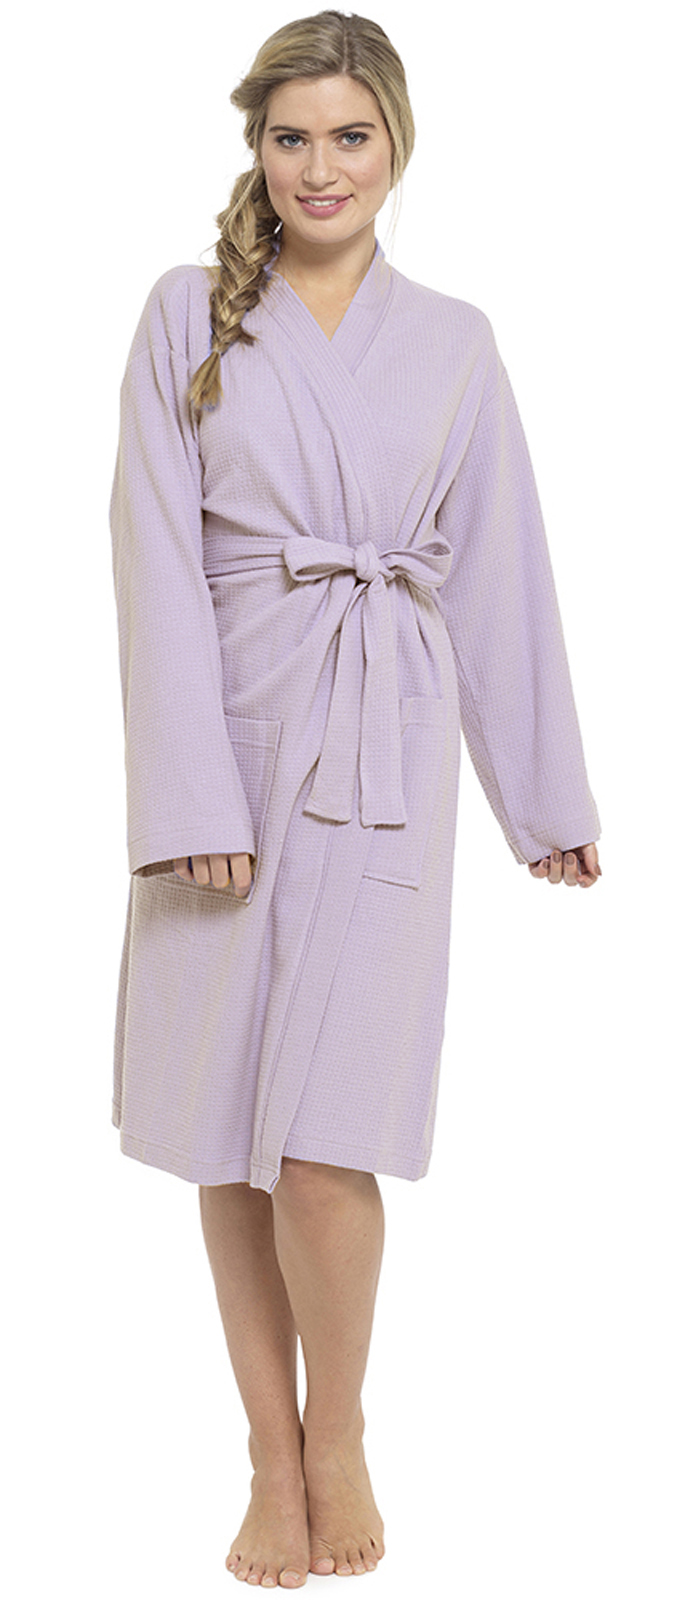 Free shipping on women's robes at xflavismo.ga Shop by length, style, color from Barefoot Dreams, Natori, UGG, Lauren Ralph Lauren & more from the best brands. Free shipping and returns.